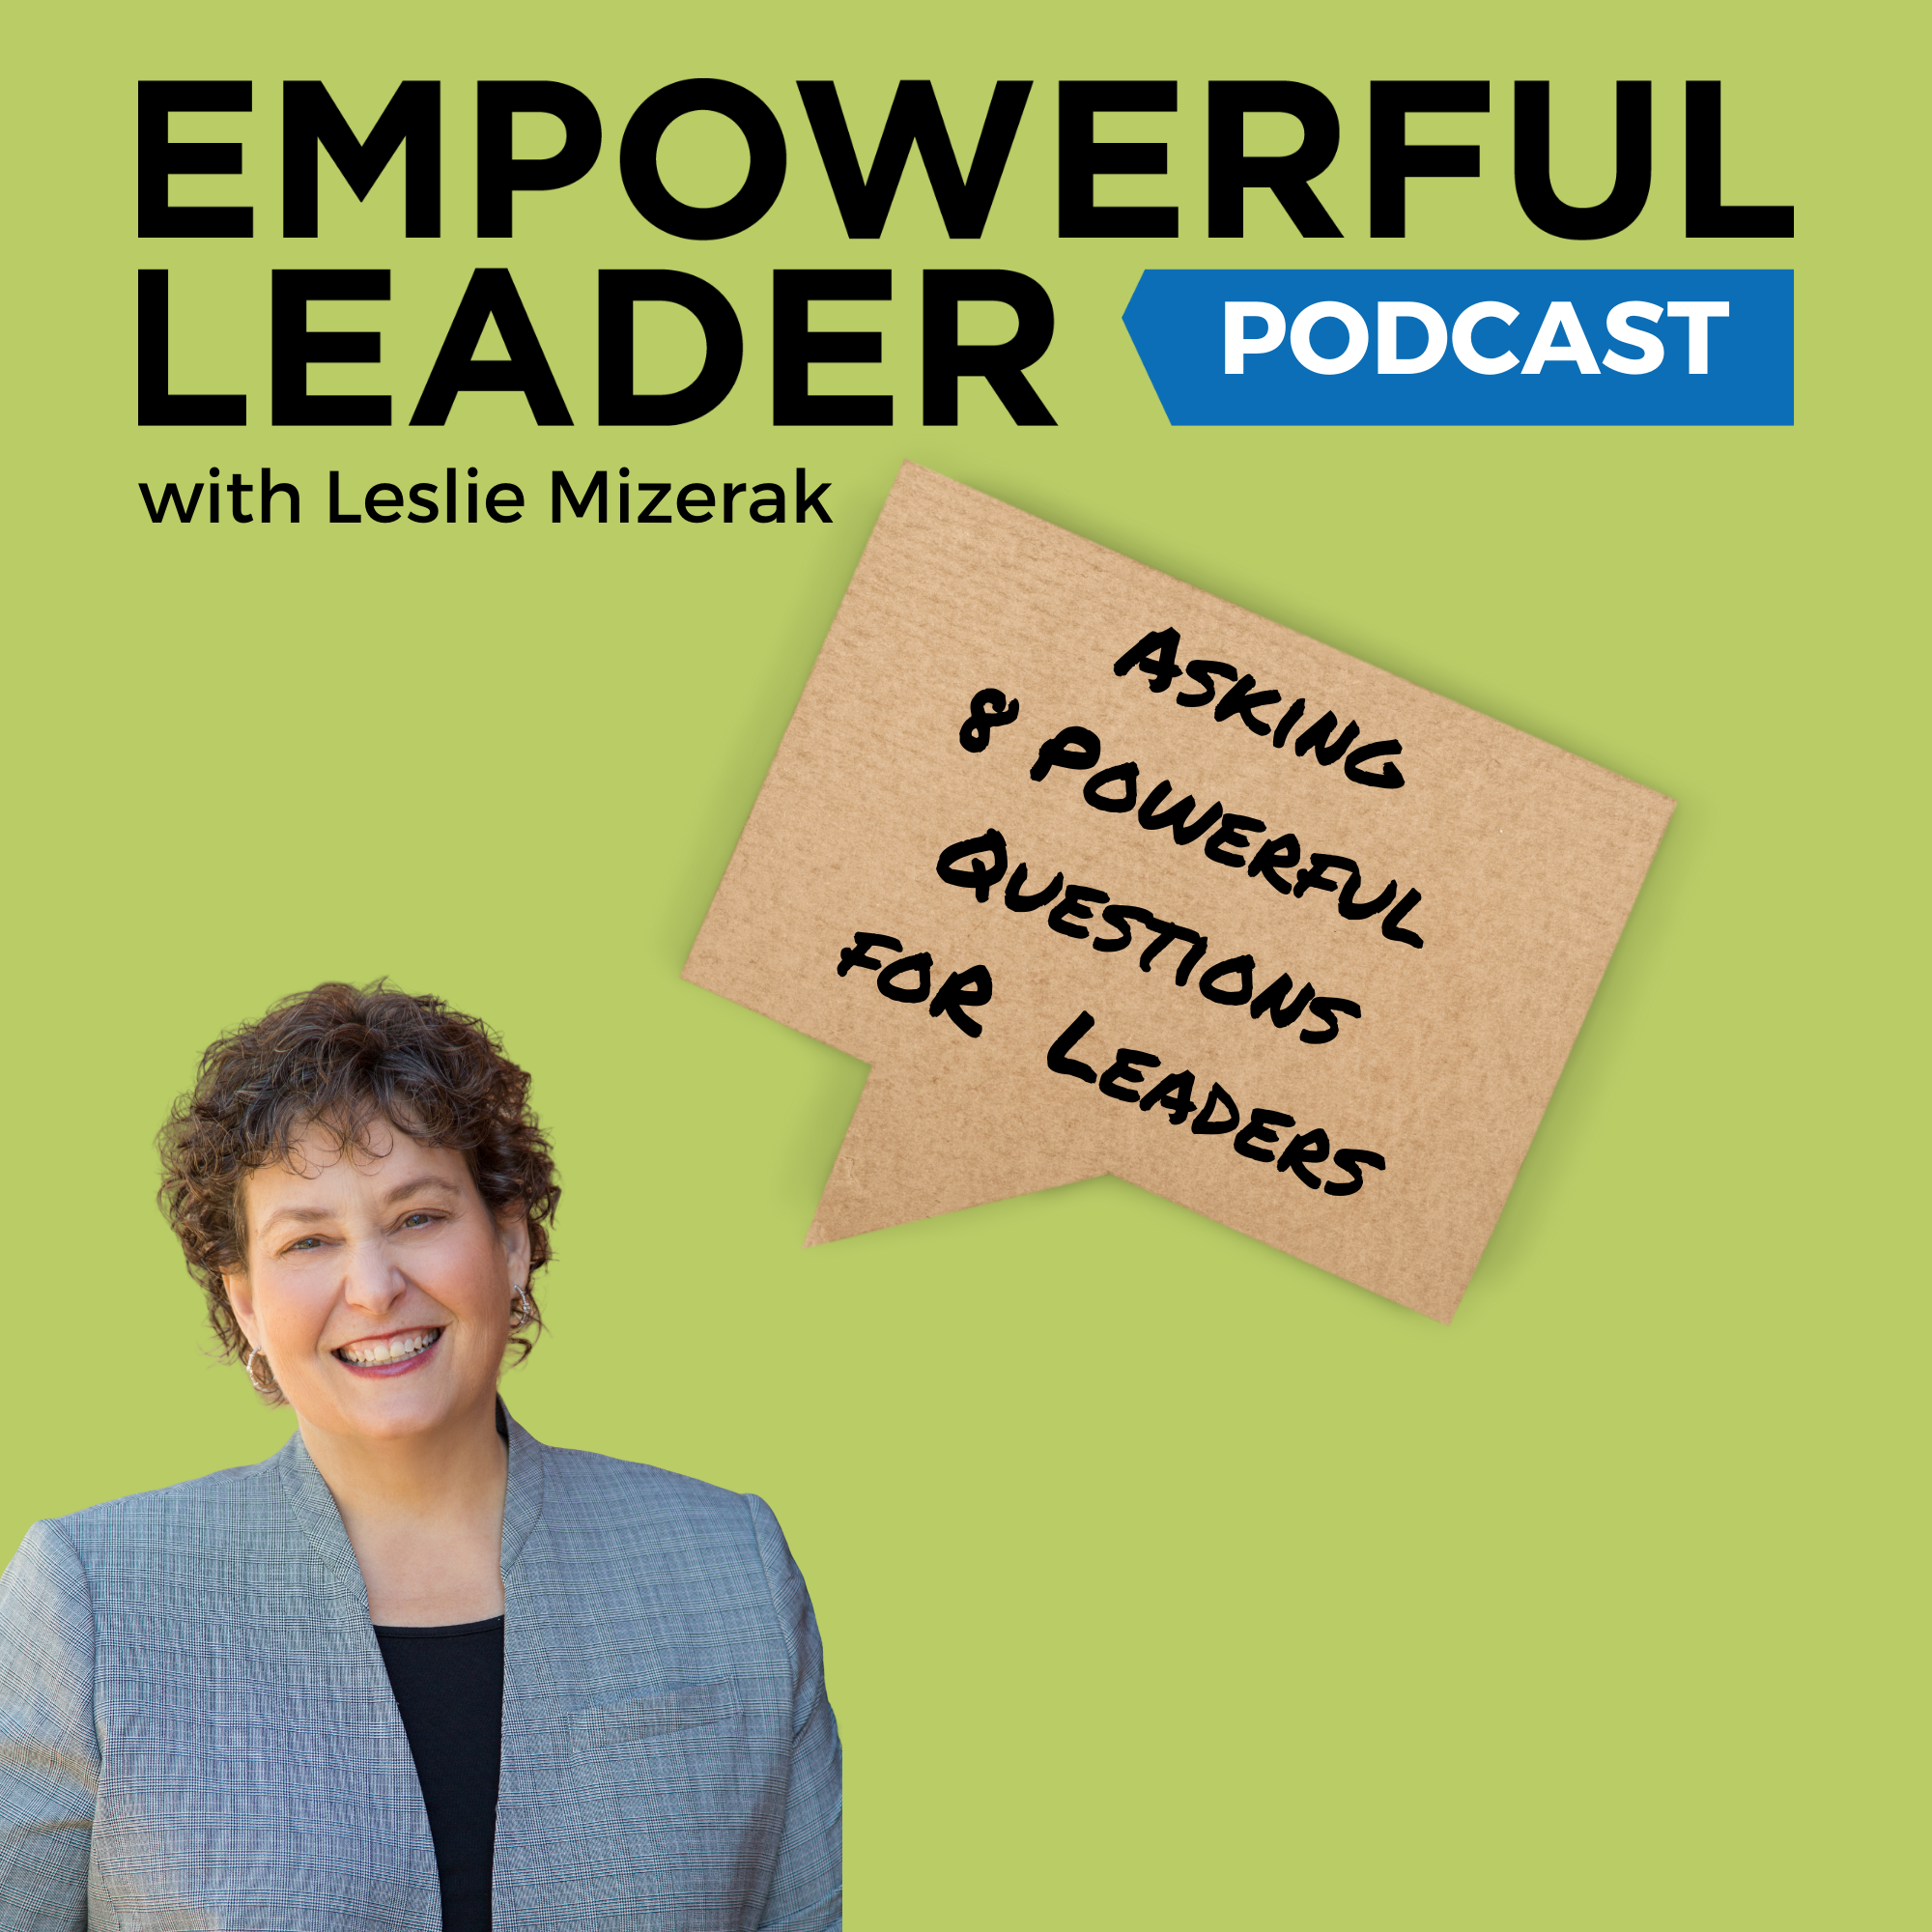 Empowerful Leader Podcast show art